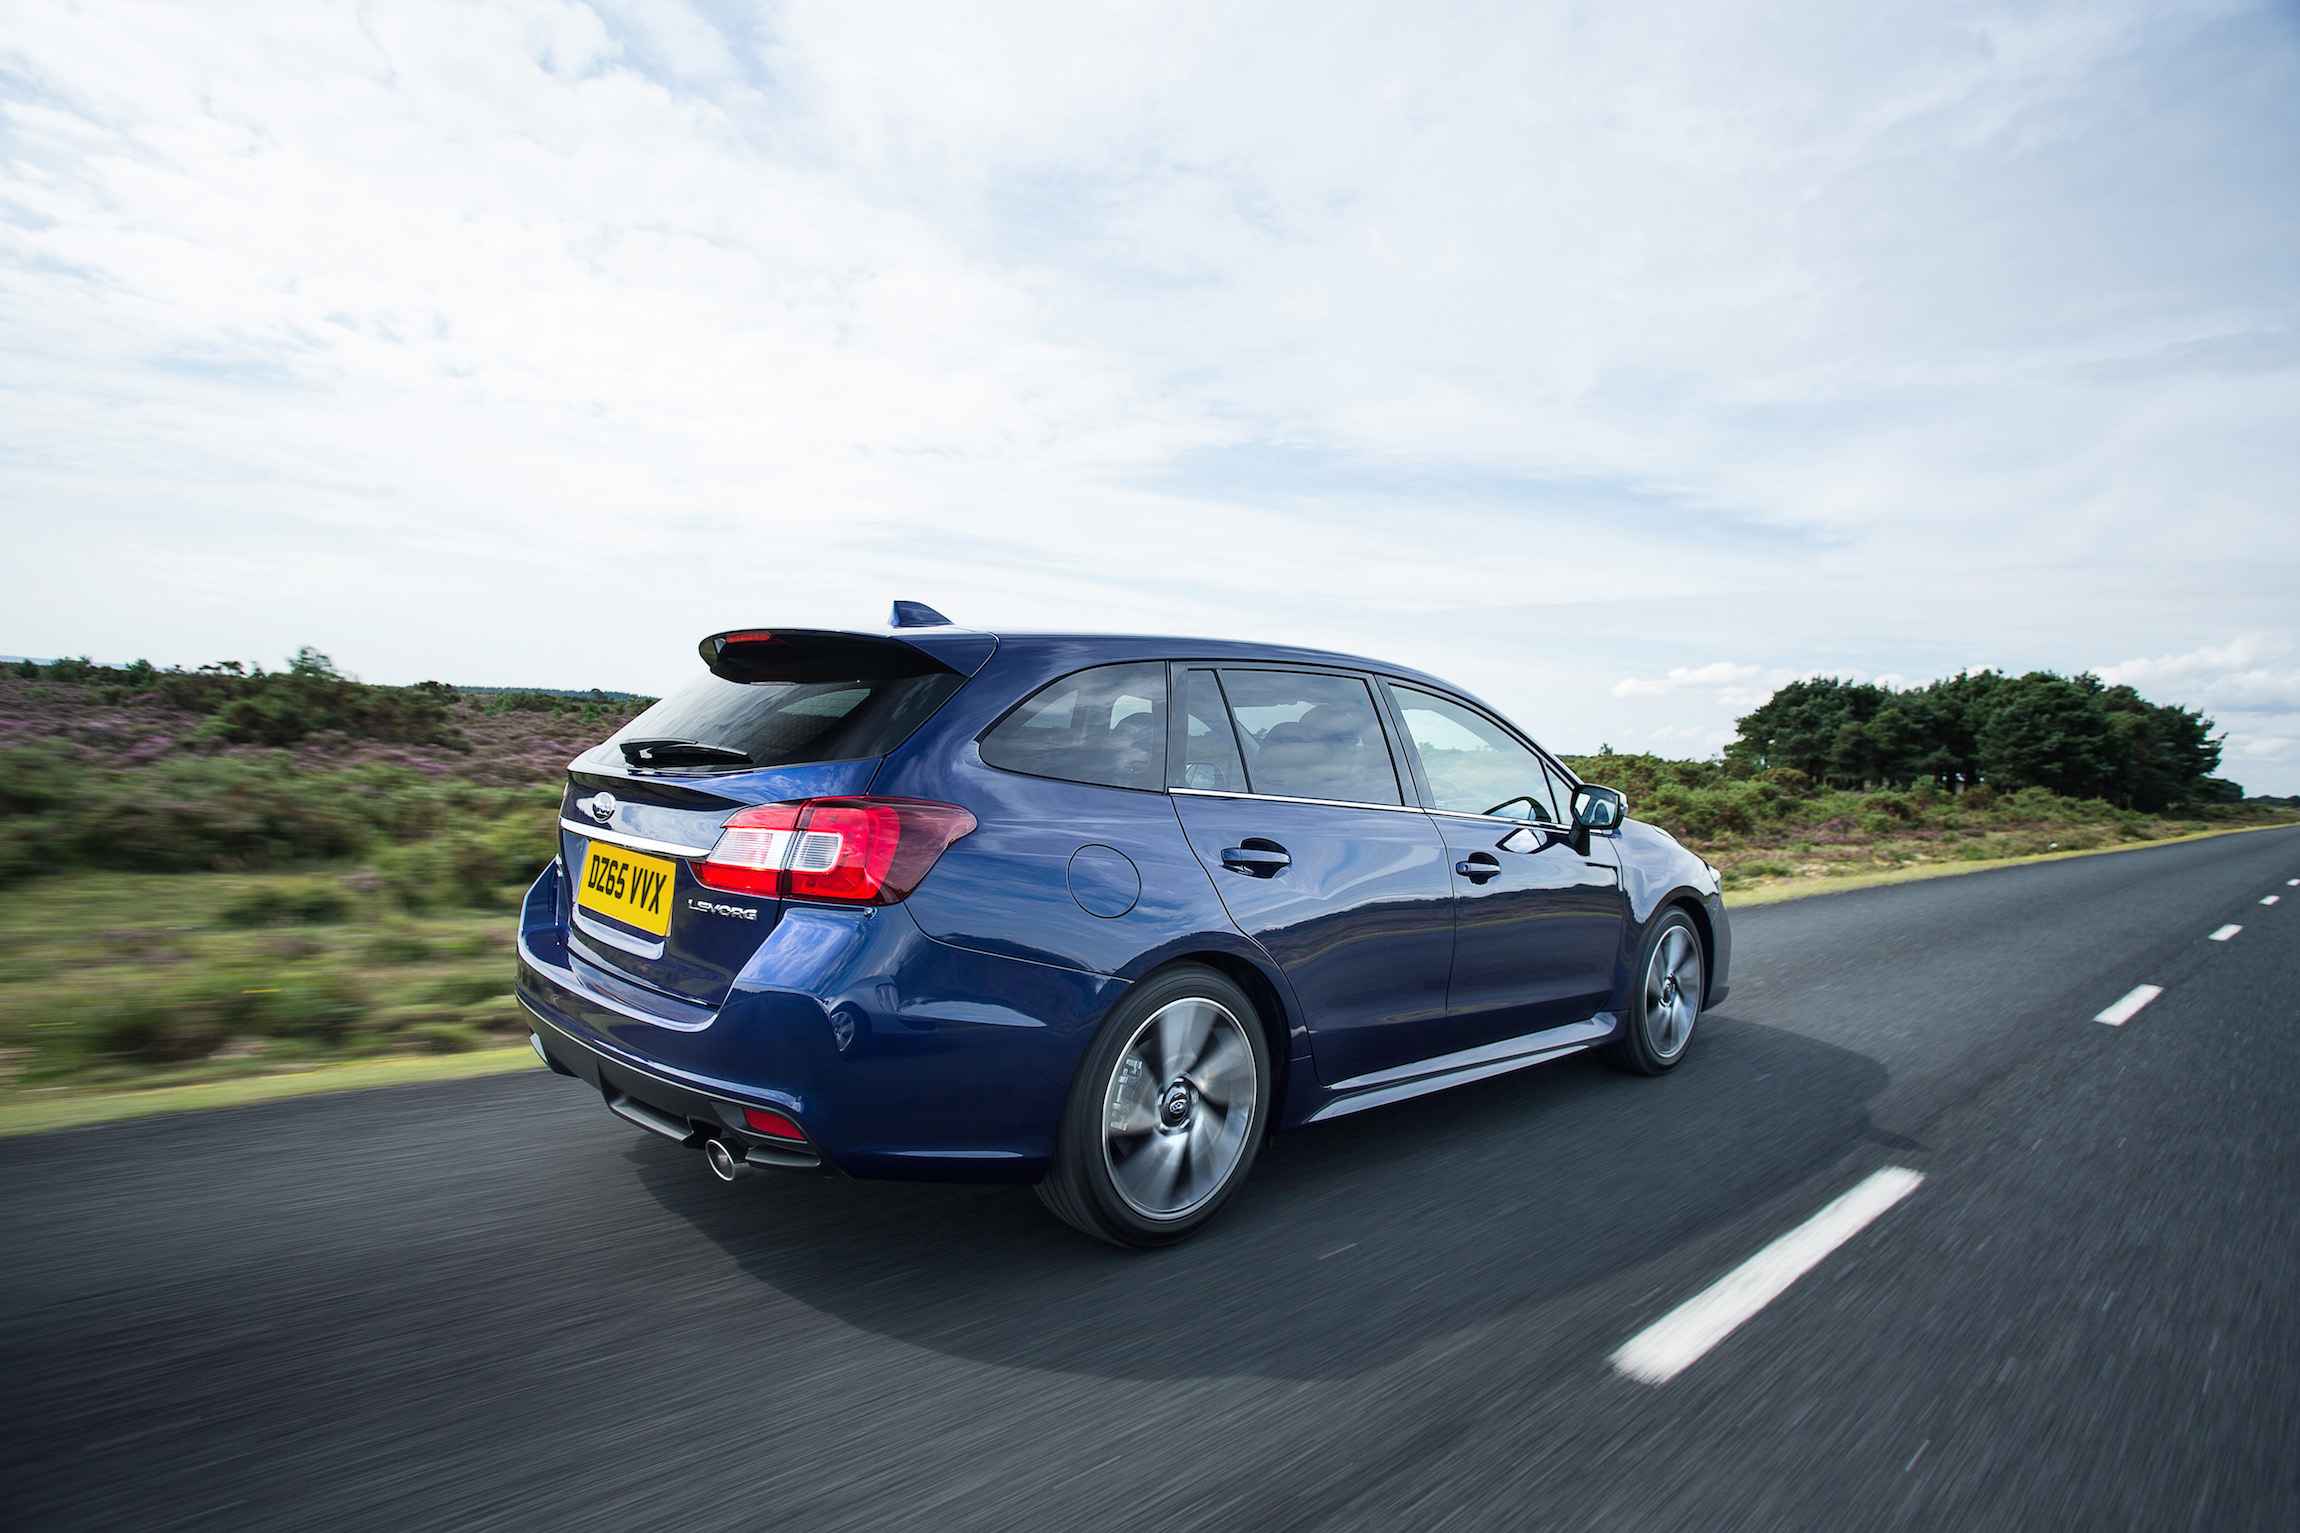 Subaru Levorg rear side actiion